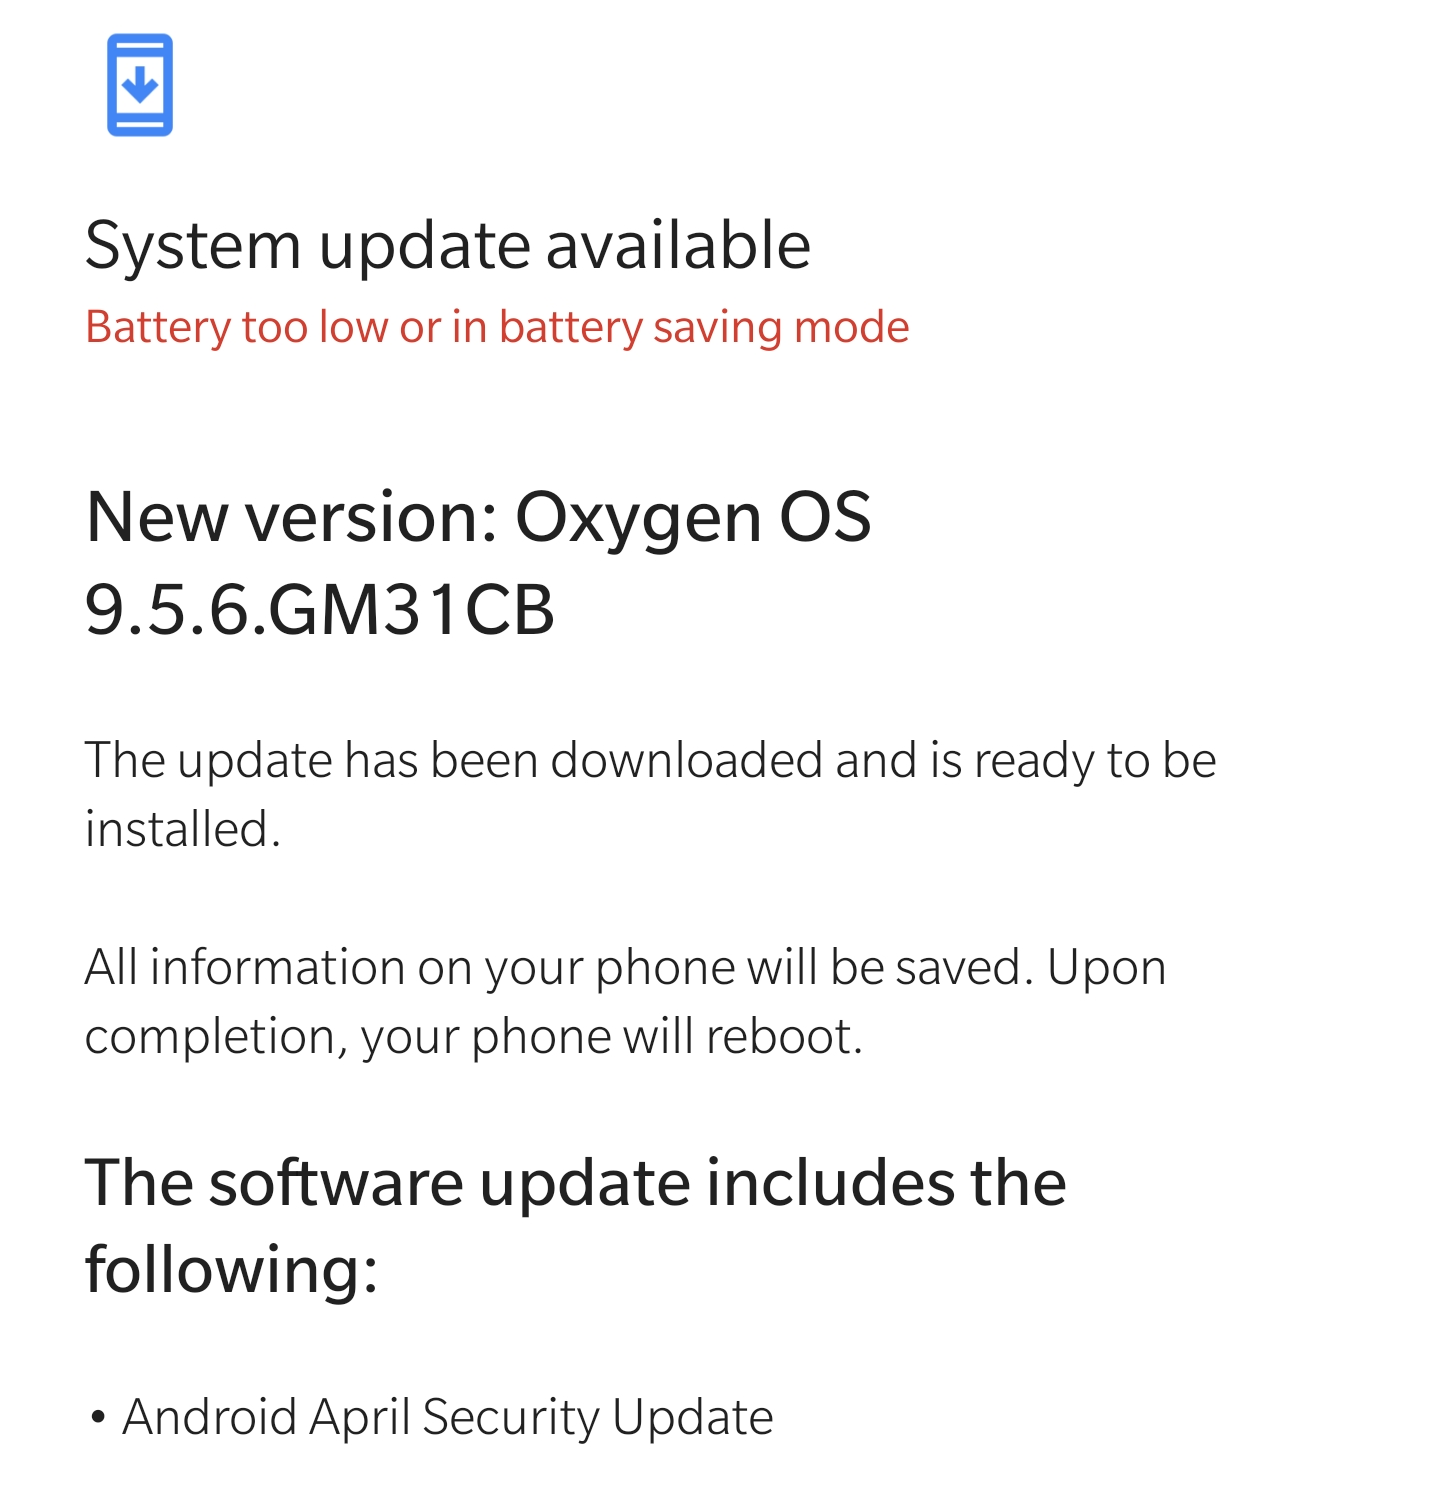 A new T-Mobile OnePlus 7 Pro update available, but without